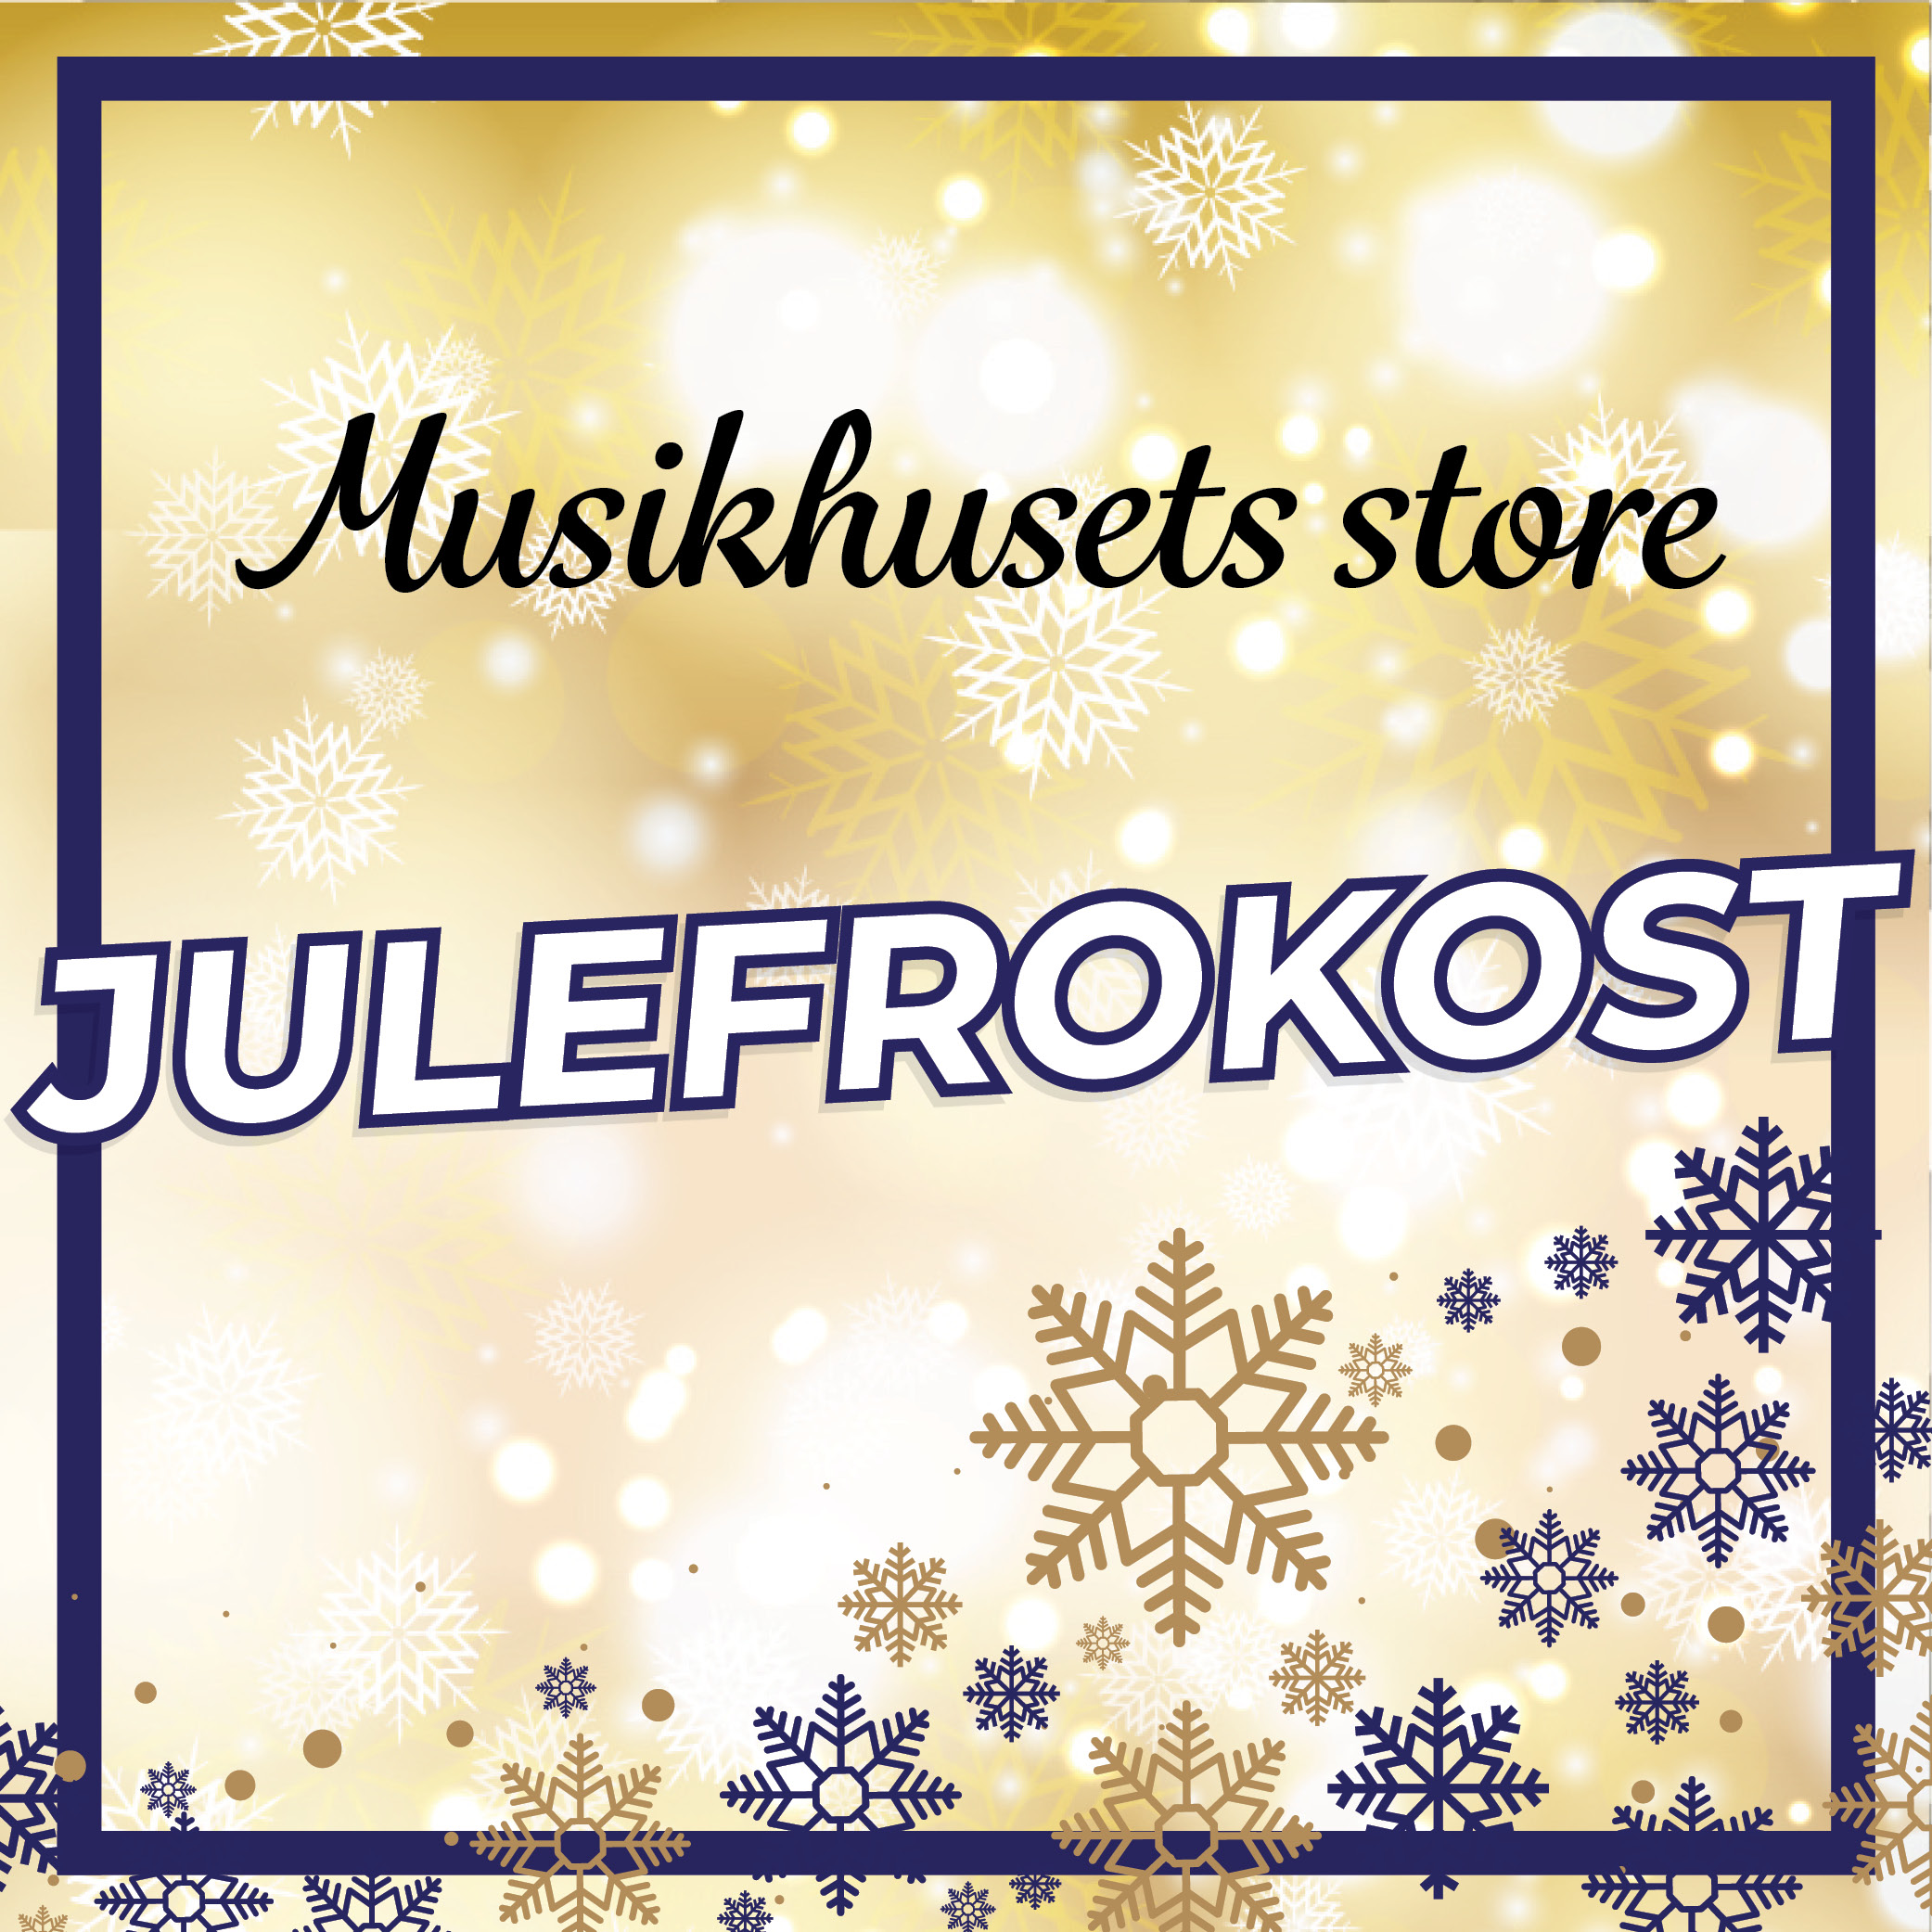 Musikhusets store julefrokost 2018